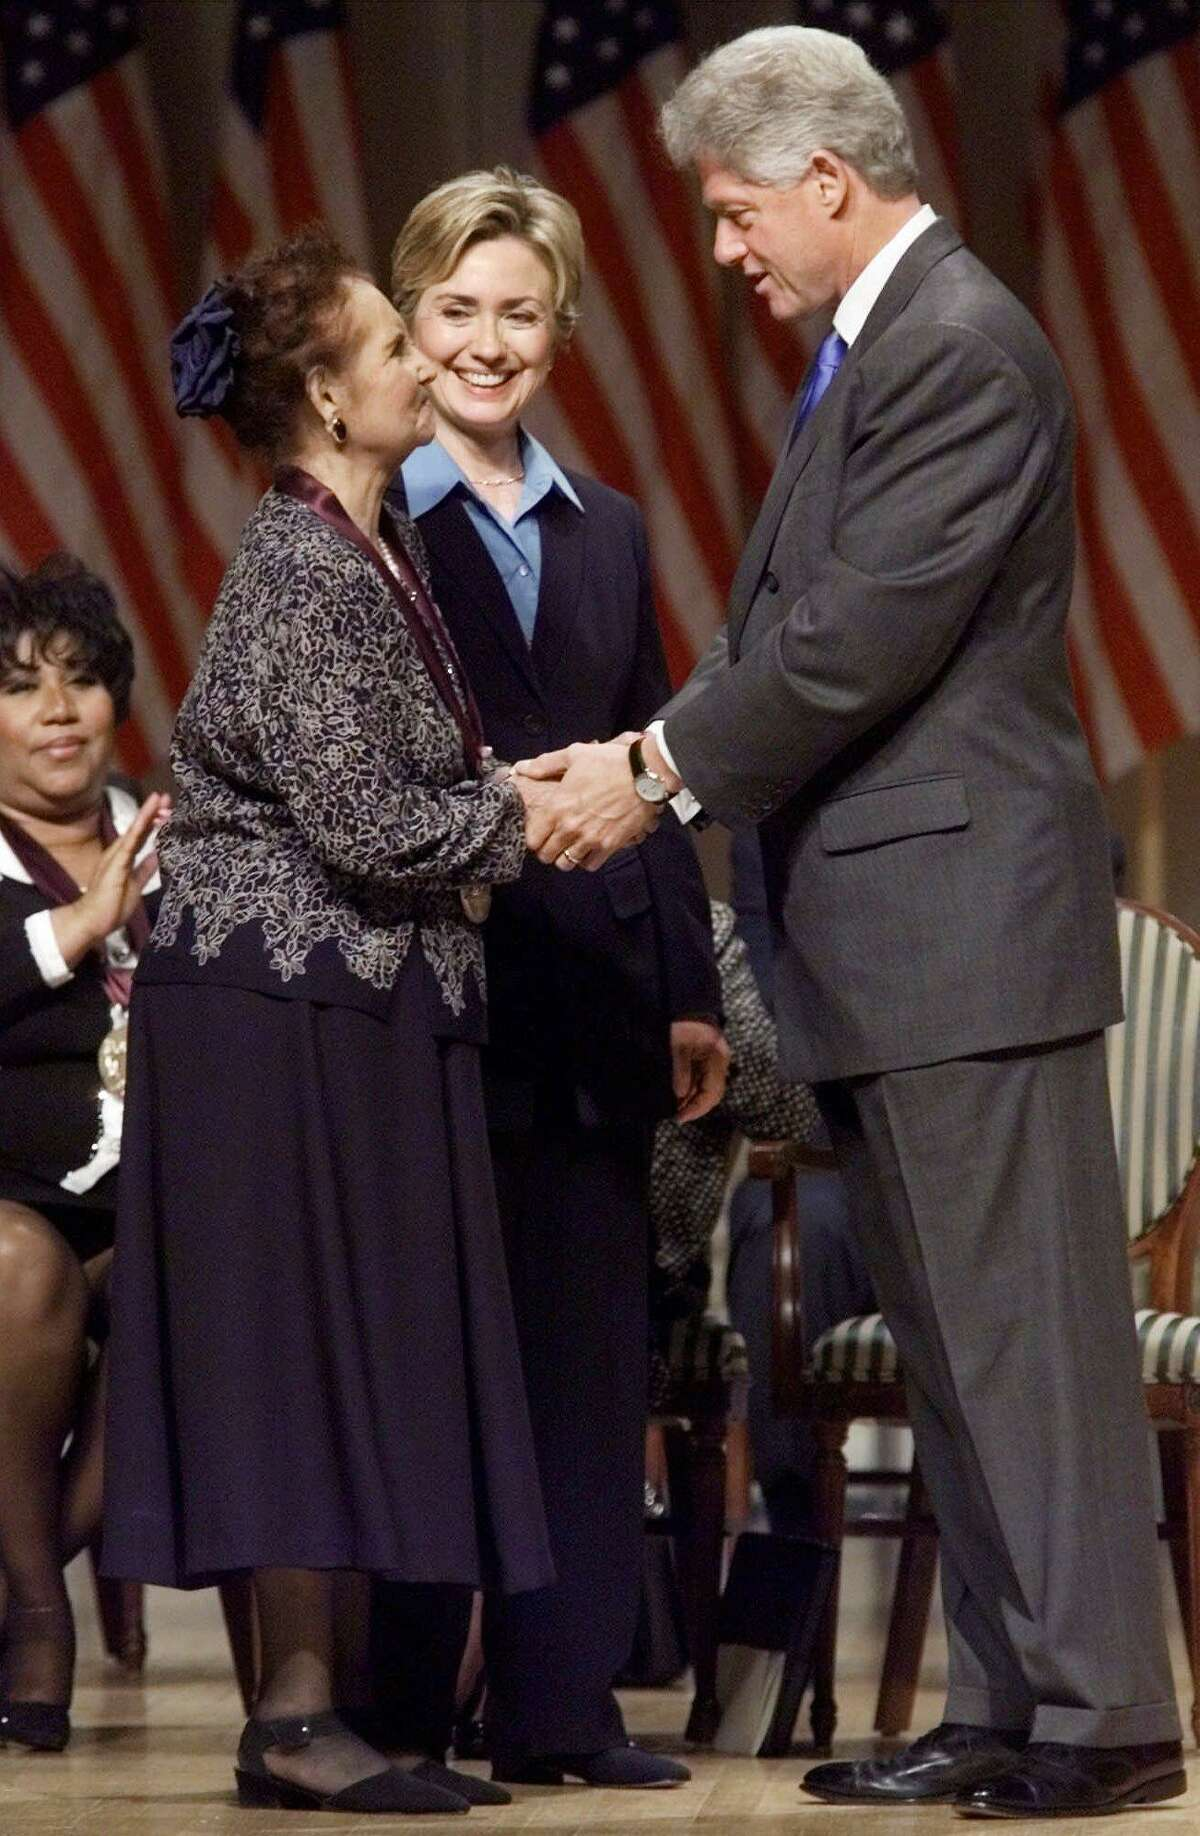 President Clinton talks with Mexican singer Lydia Mendoza after presenting her with a National Medal of Arts, Wednesday Sept. 29, 1999 in Washington. First lady Hillary Rodham Clinton is at center. (AP Photo/Khue Bui)